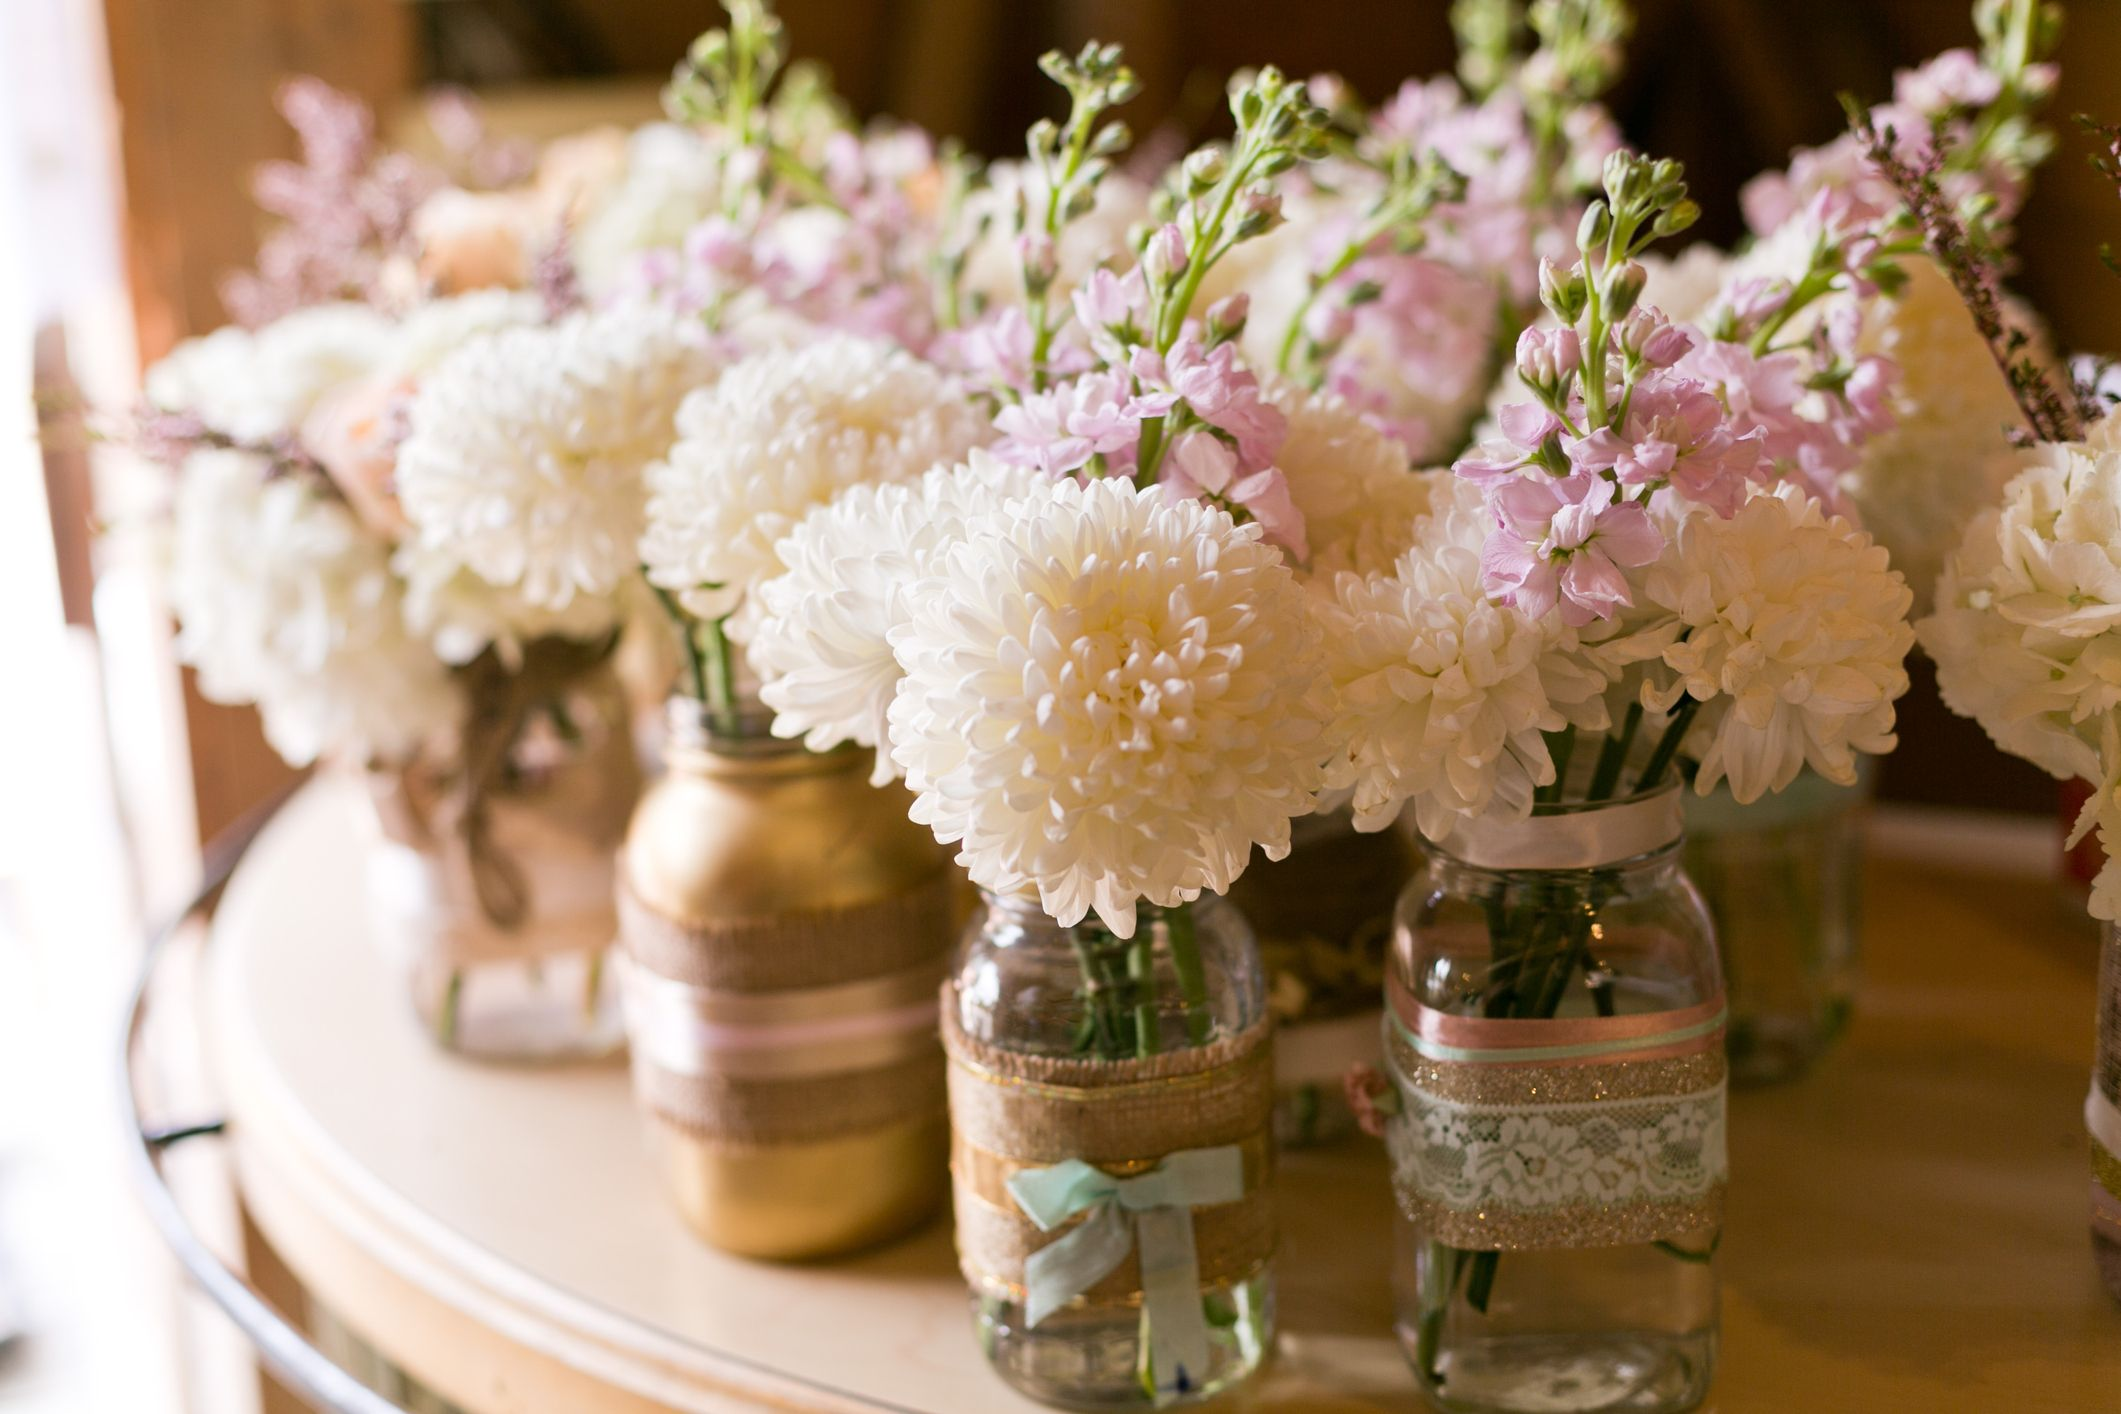 10 ideas para decorar una boda con flores Hogarmania